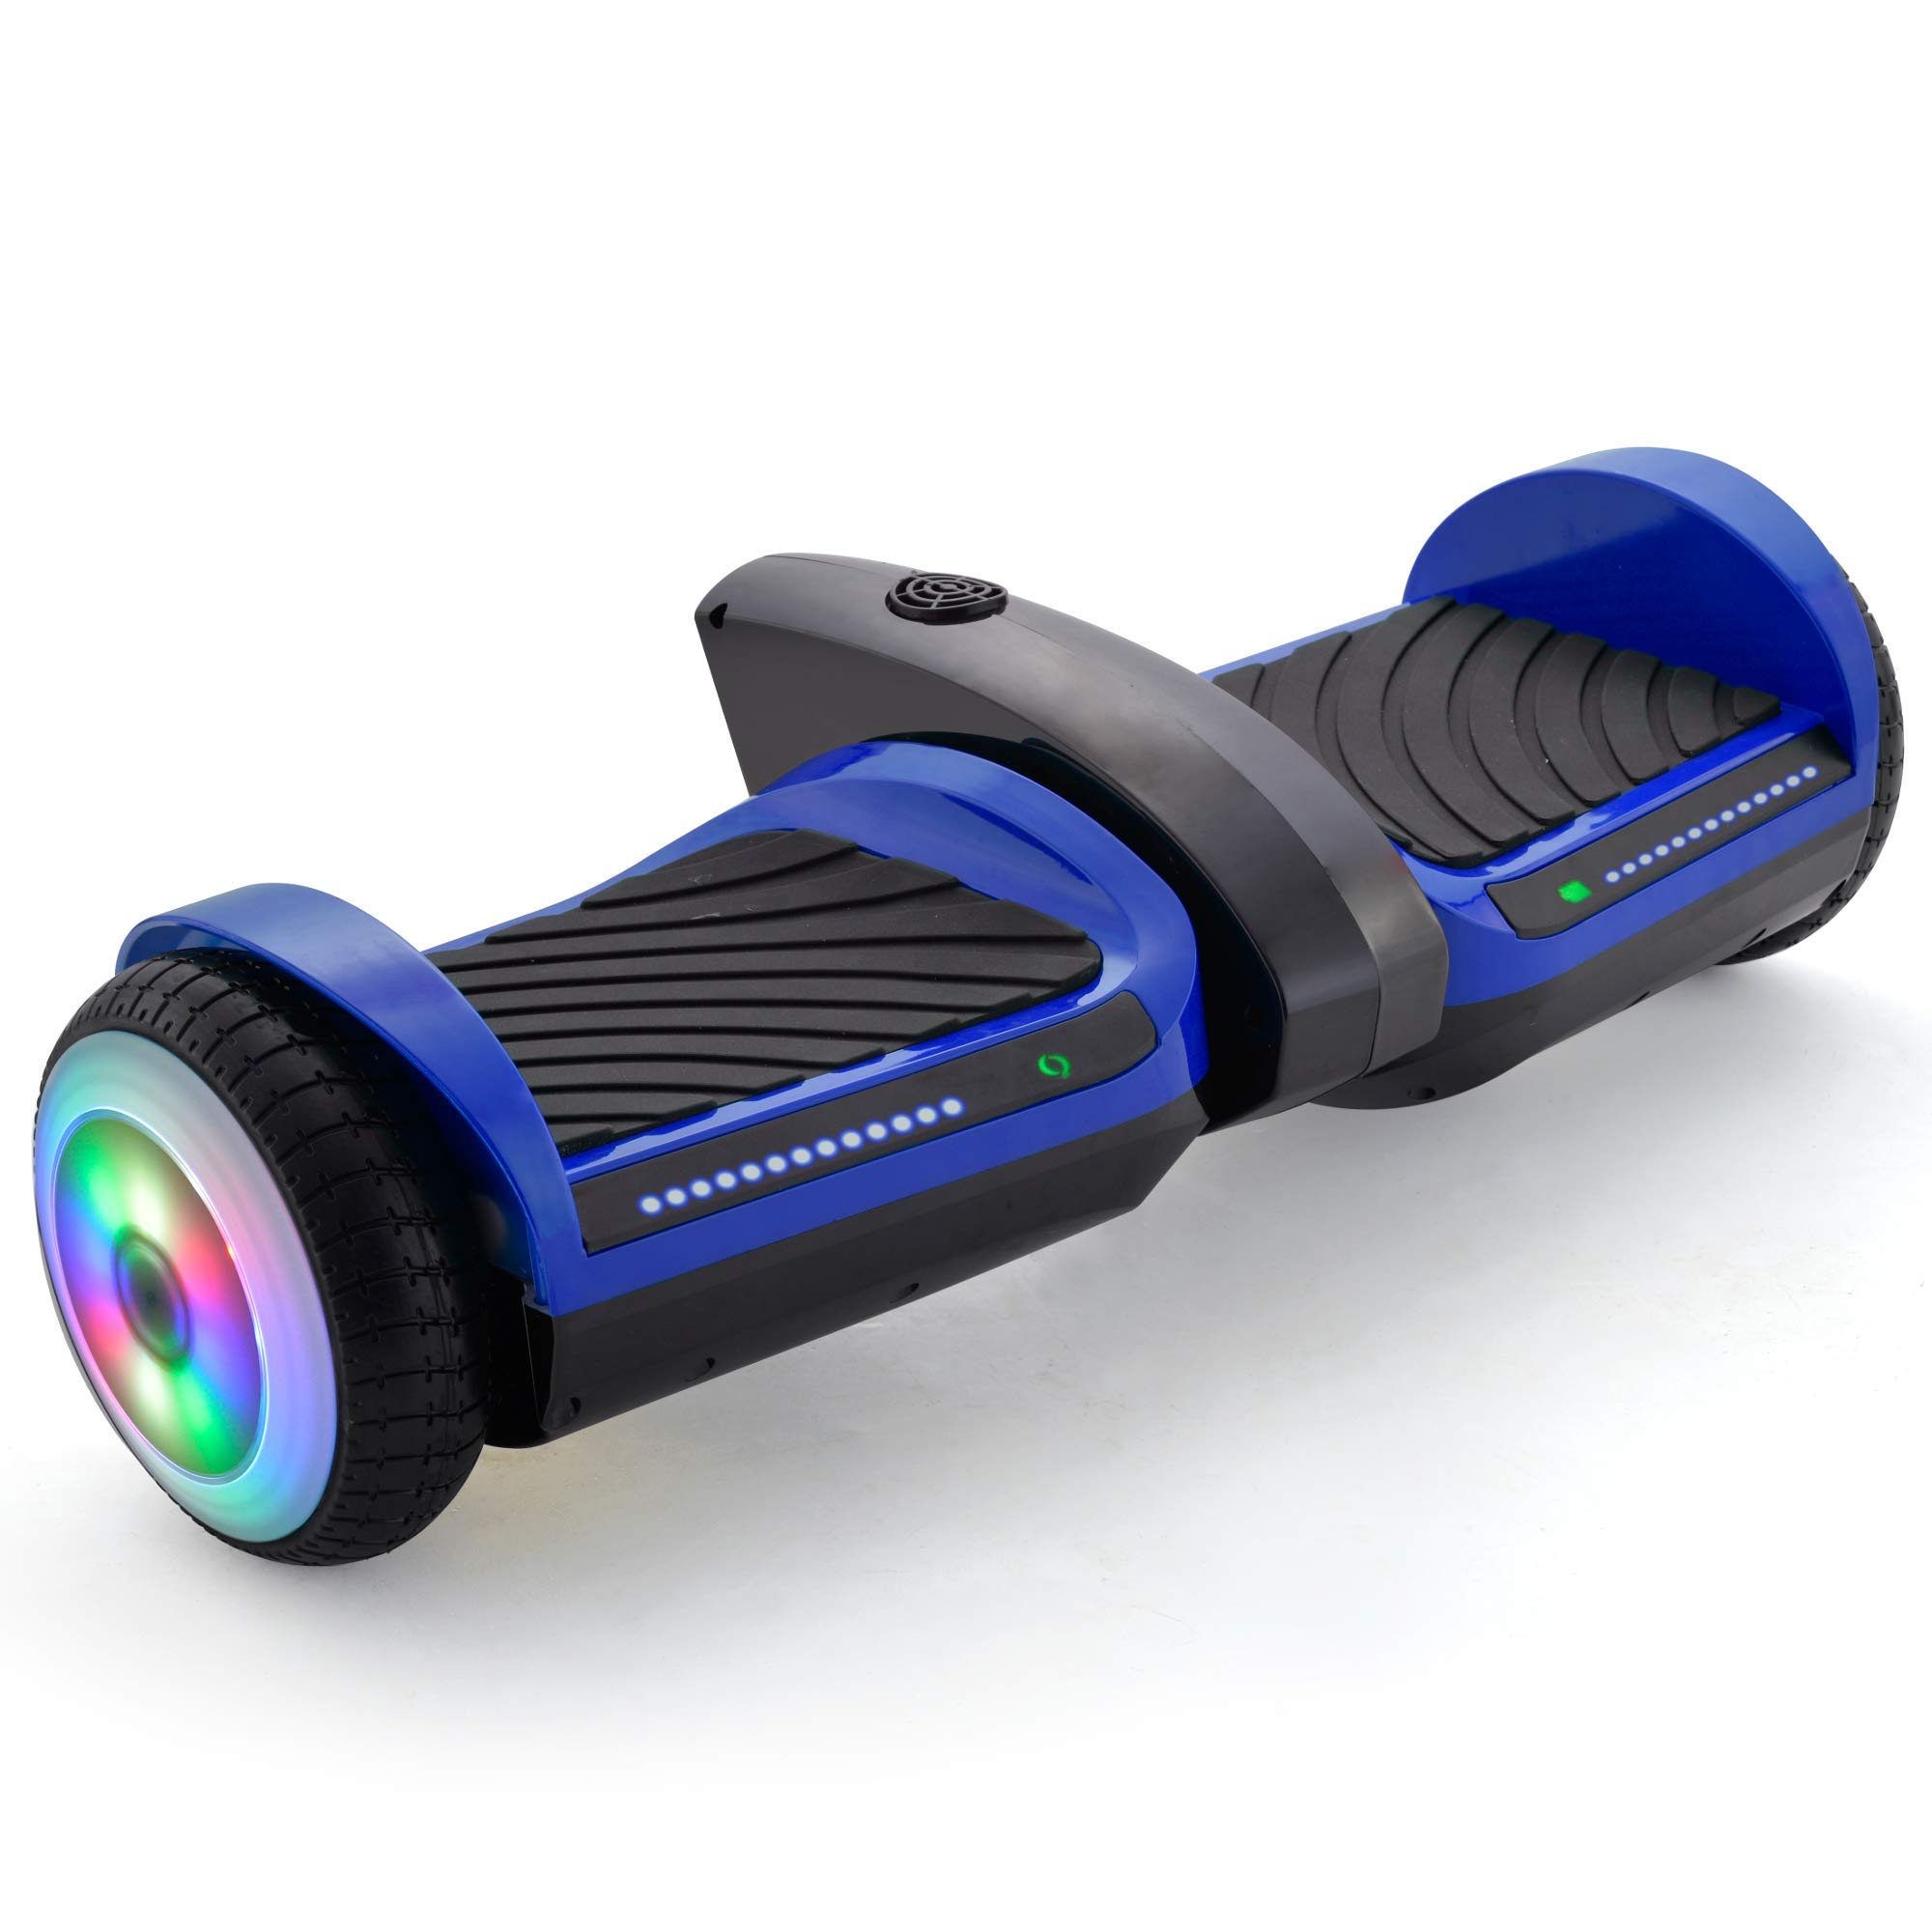 V-Fire UL2272 6.5'' Balance Board with Mist Spray and Sound Effects - Electric Hoverboard with Bluetooth and Lights - Self Balancing Hoverboard with LED Light and Built-in Bluetooth Speaker (Blue)